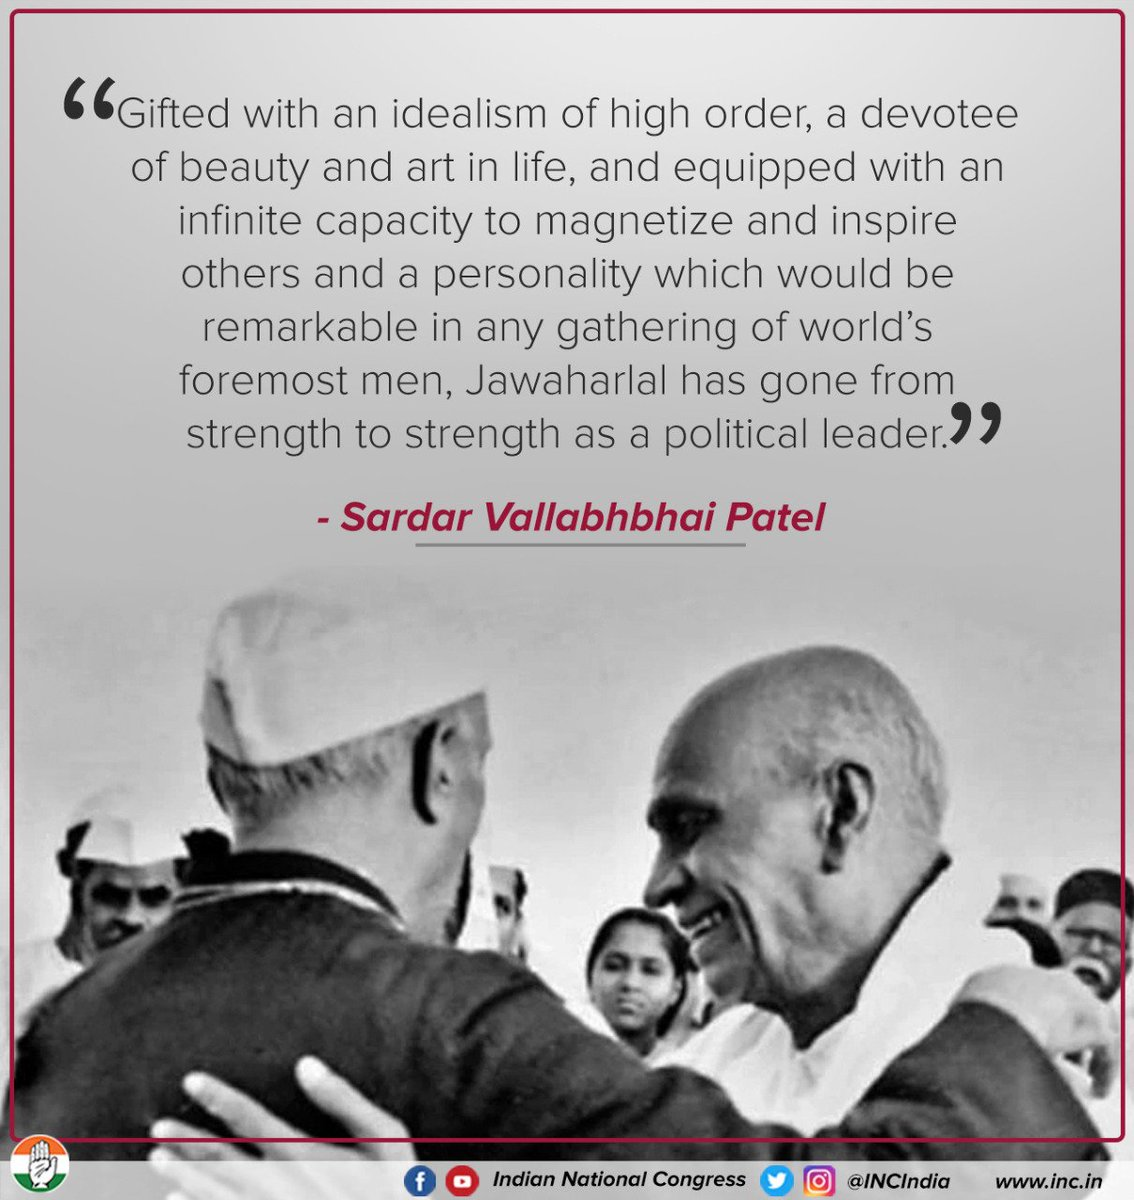 """Sardar Vallabhbhai Patel once said of Pt. Jawaharlal Nehru, """"Only I know how much Nehru has toiled for India"""". Such was the bond they shared, filled with love, admiration & brotherhood.   #RememberingNehru"""